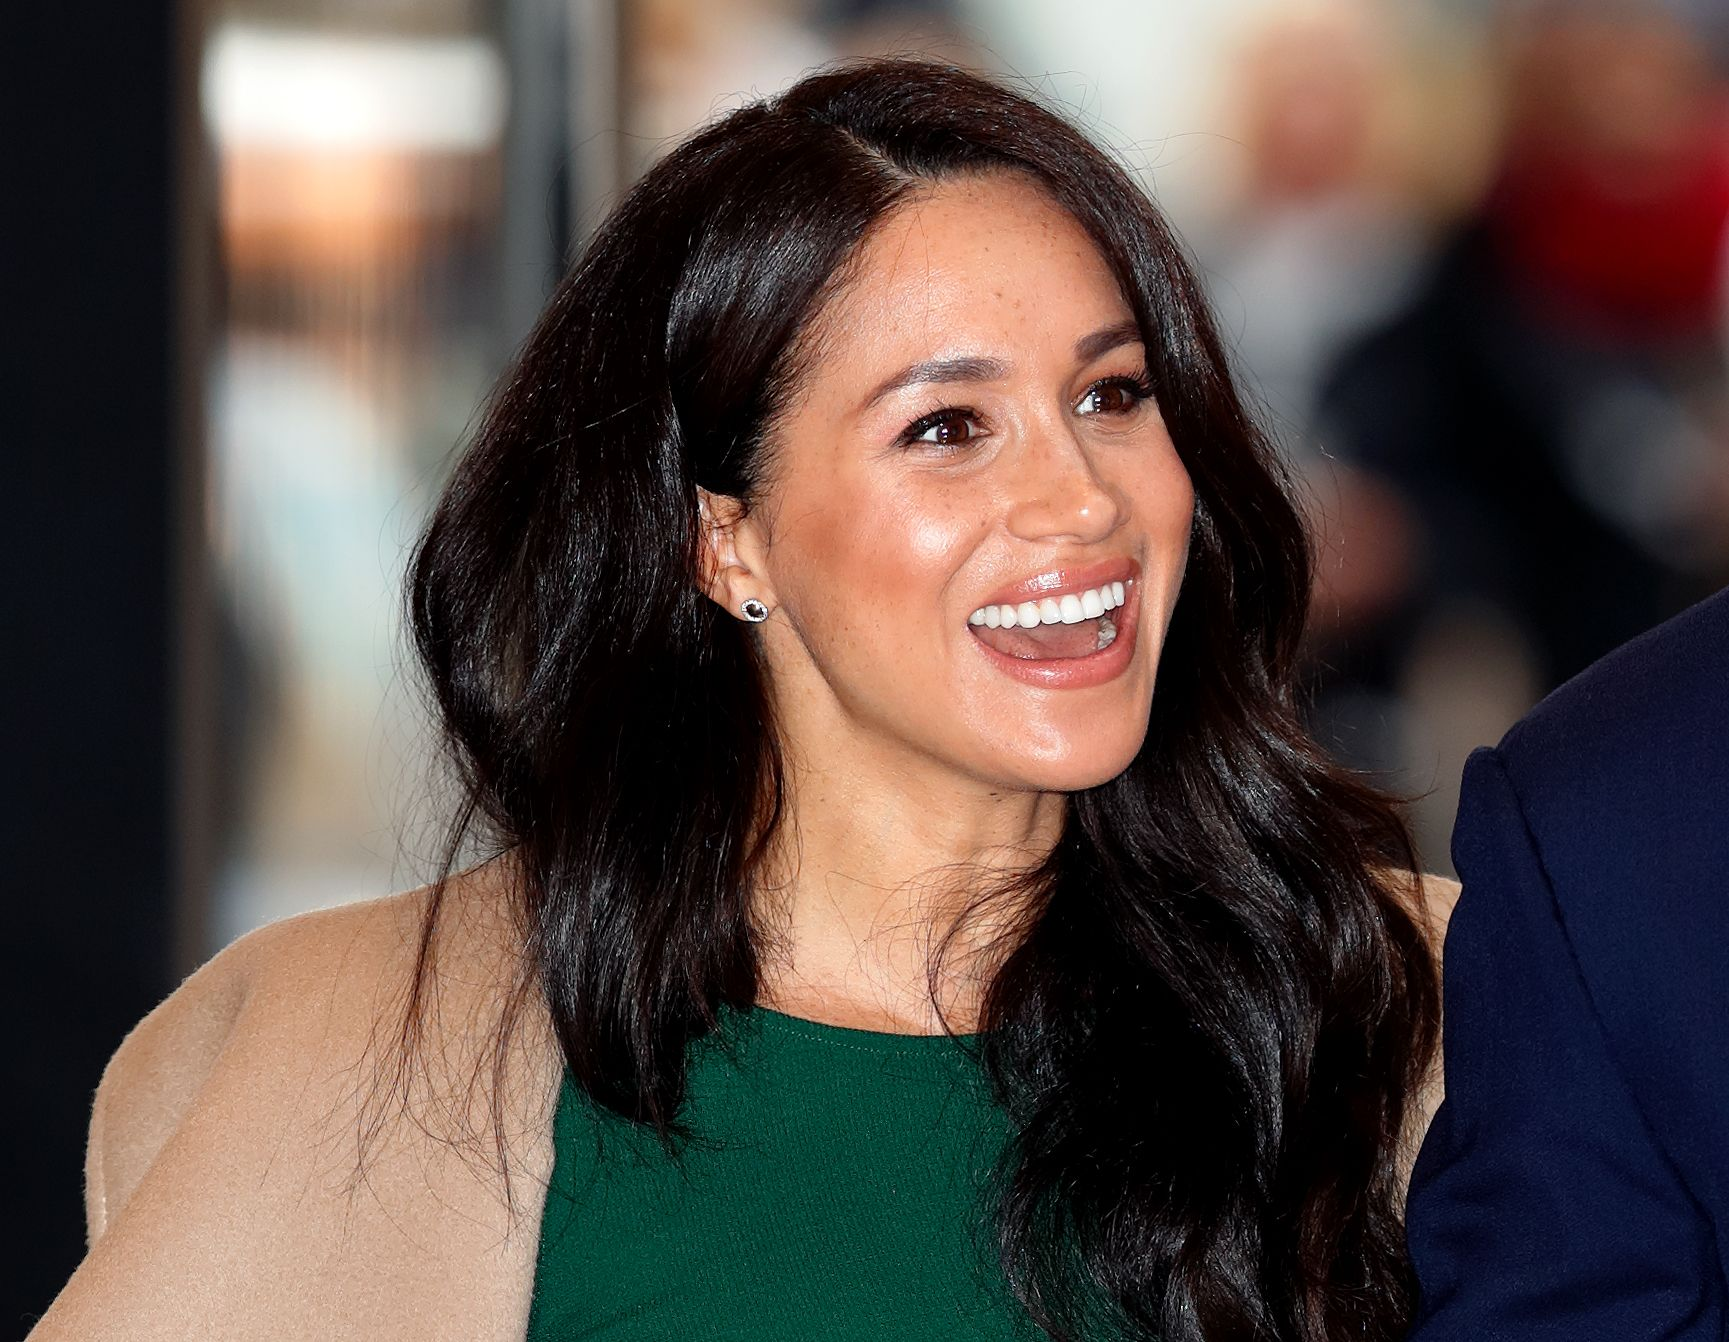 Sussex Royal shares pictures of Meghan's visit to animal welfare charity Mayhew